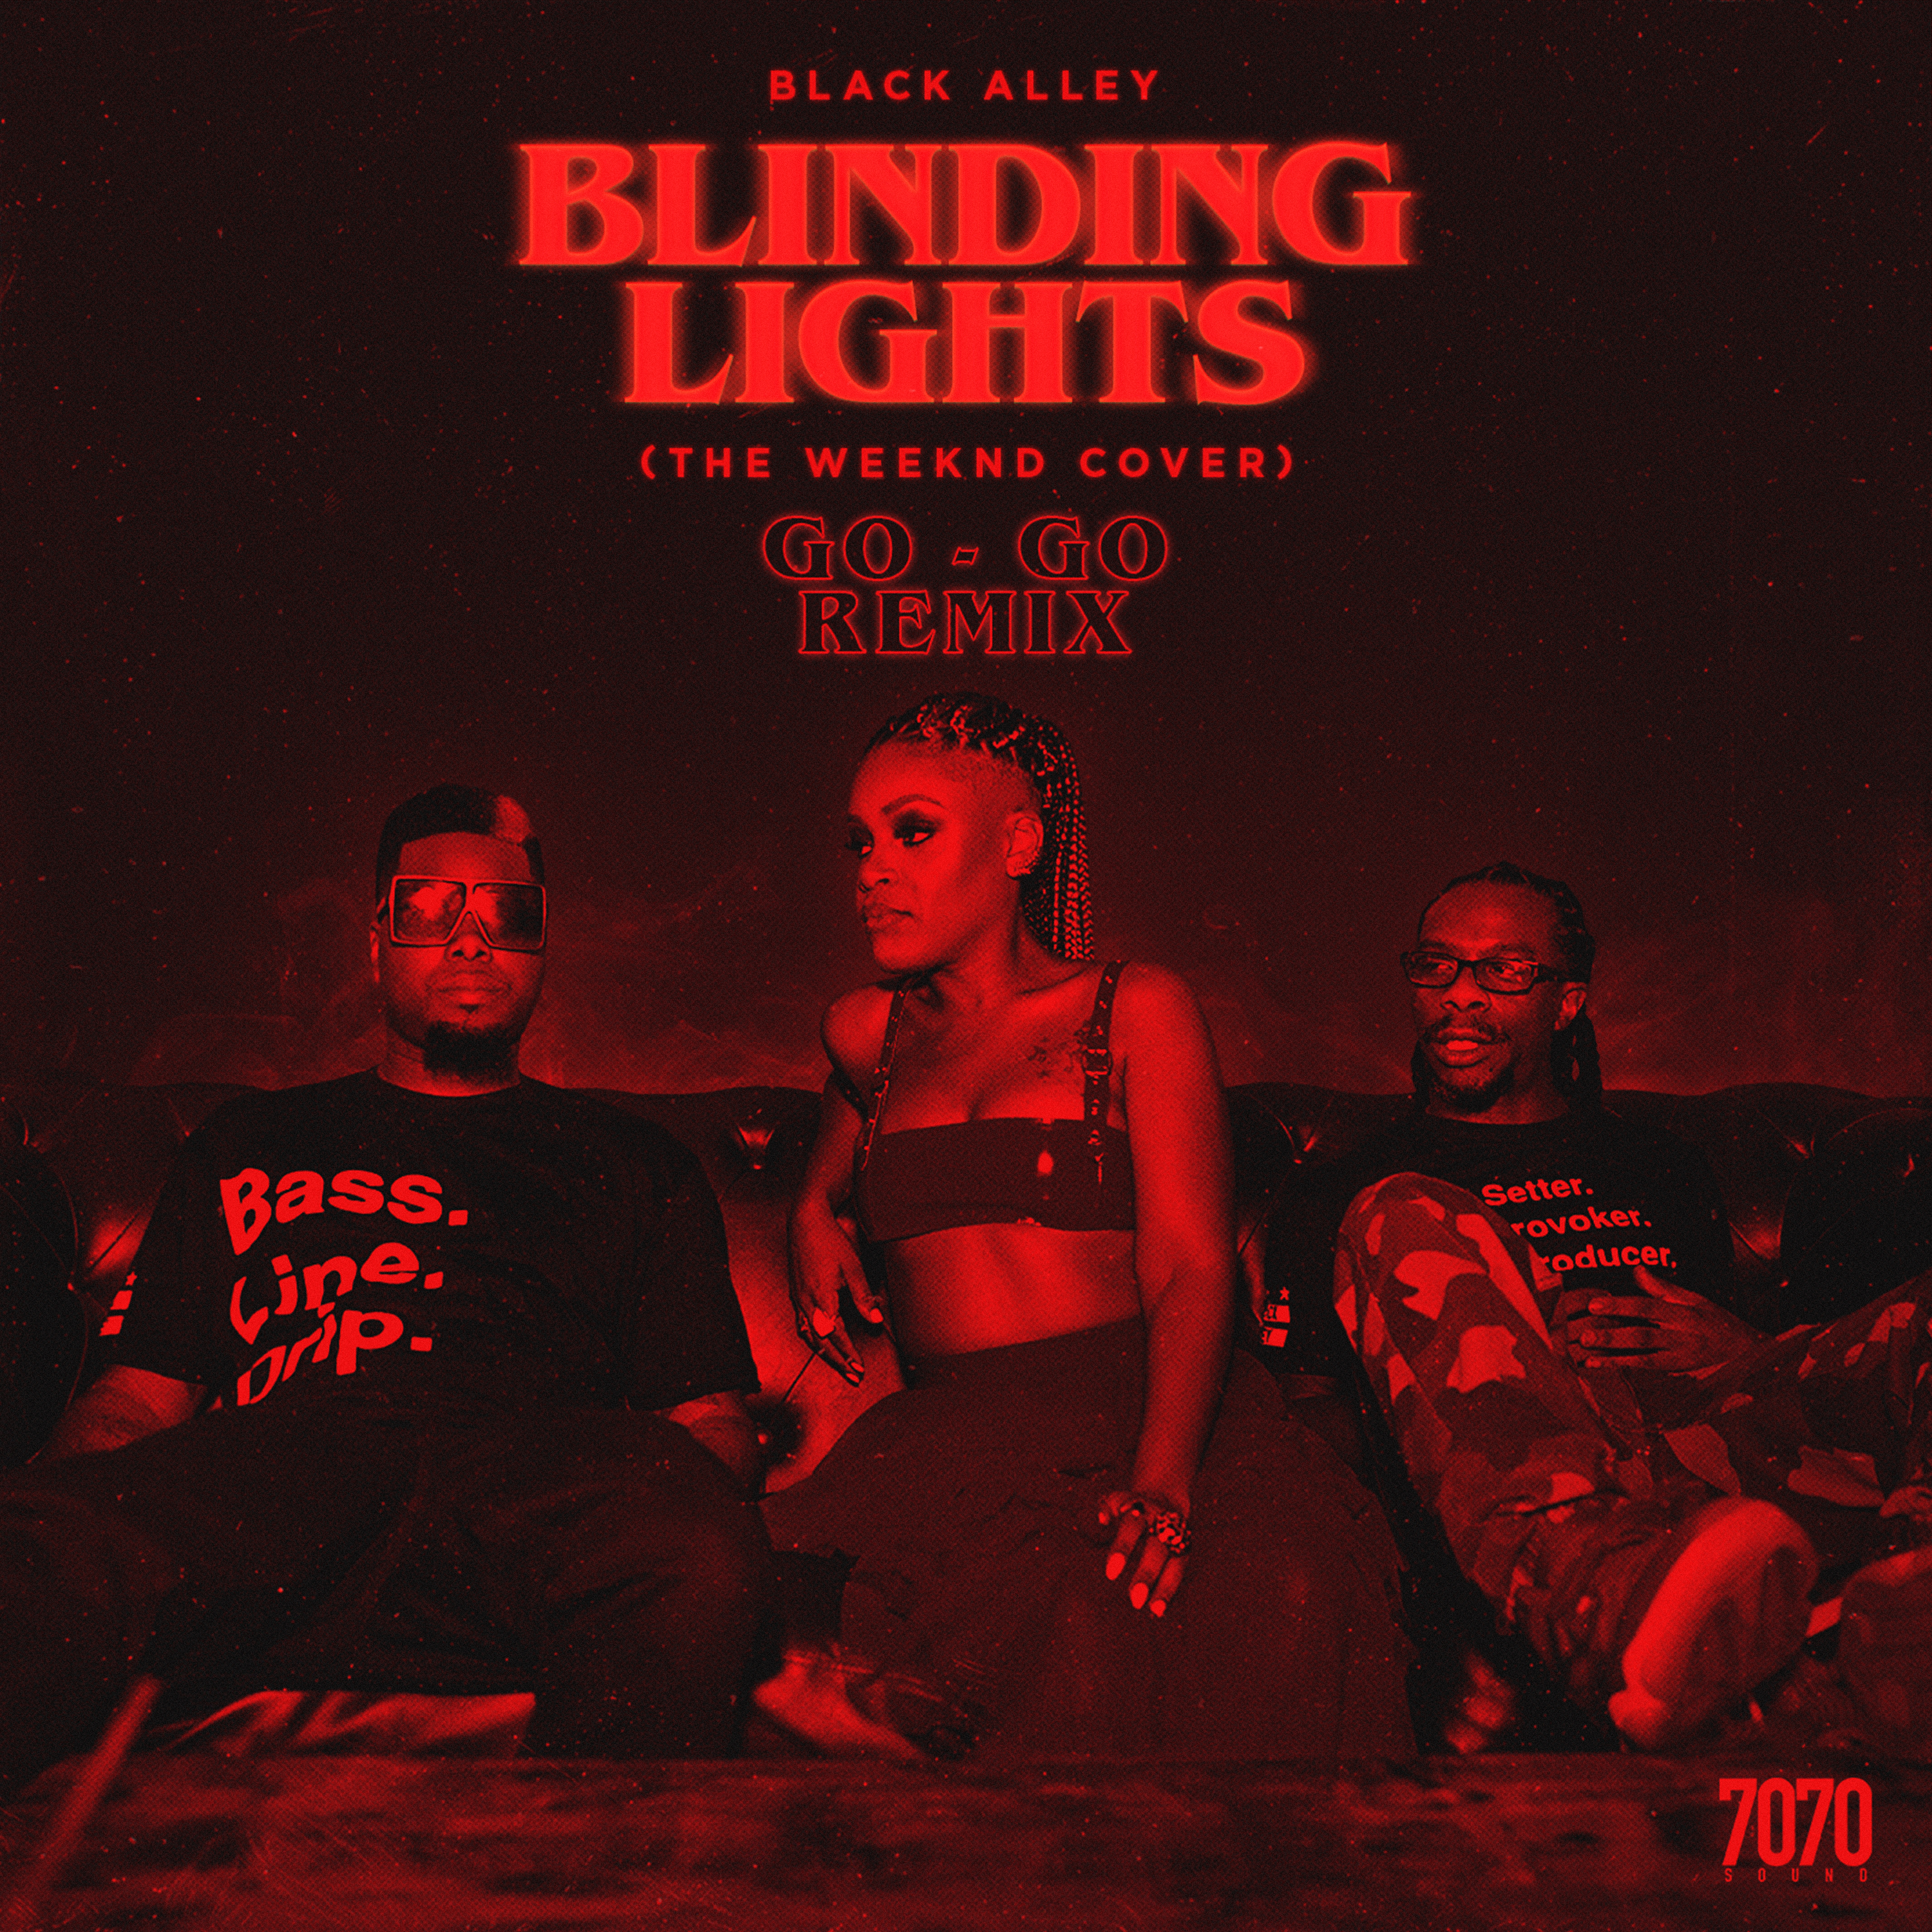 Blinding Lights (The Weeknd Cover) Go - Go Version Image